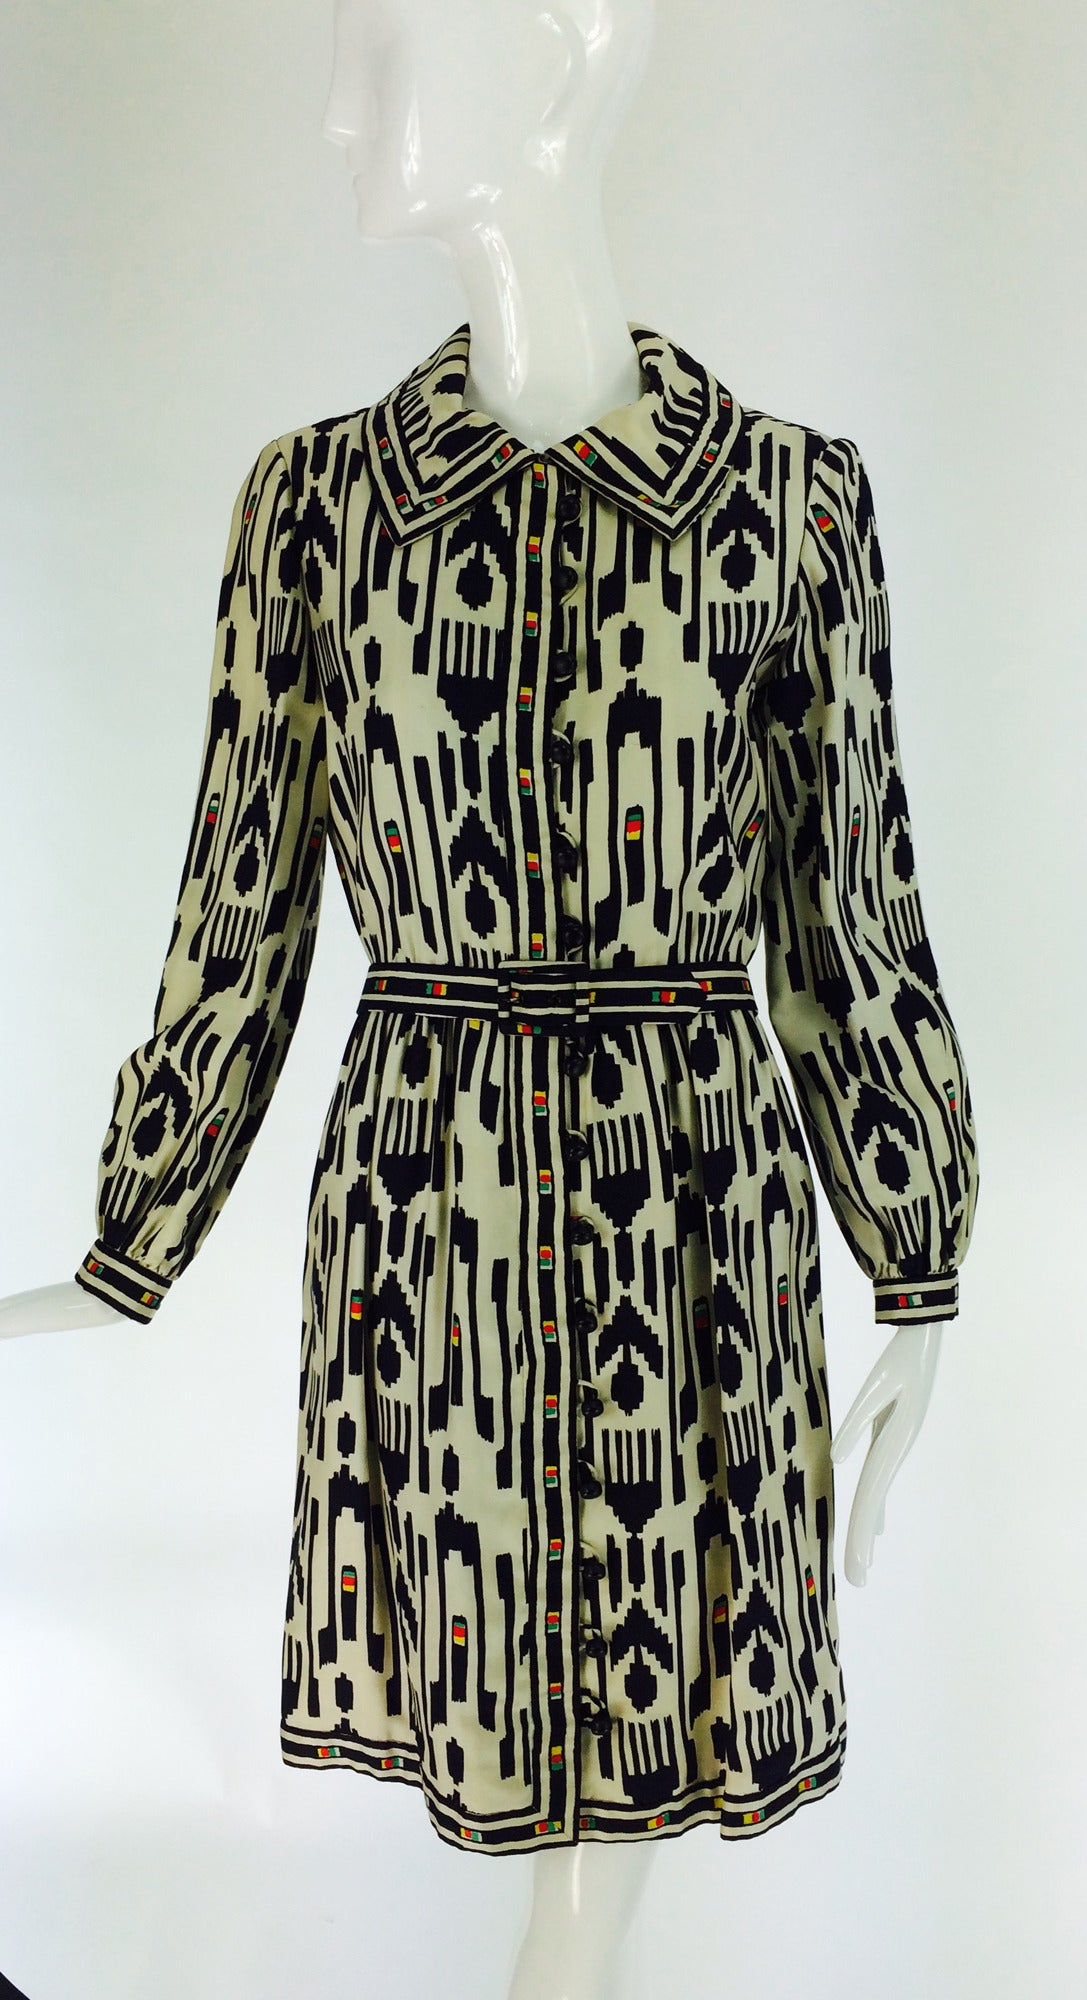 Silk twill ikat print shirt waist/coat dress dress in black and cream with pops of yellow, green and red...Tribal influenced design on a classic dress that could be worn as a lightweight coat...Long sleeve dress closes at the front with loop and